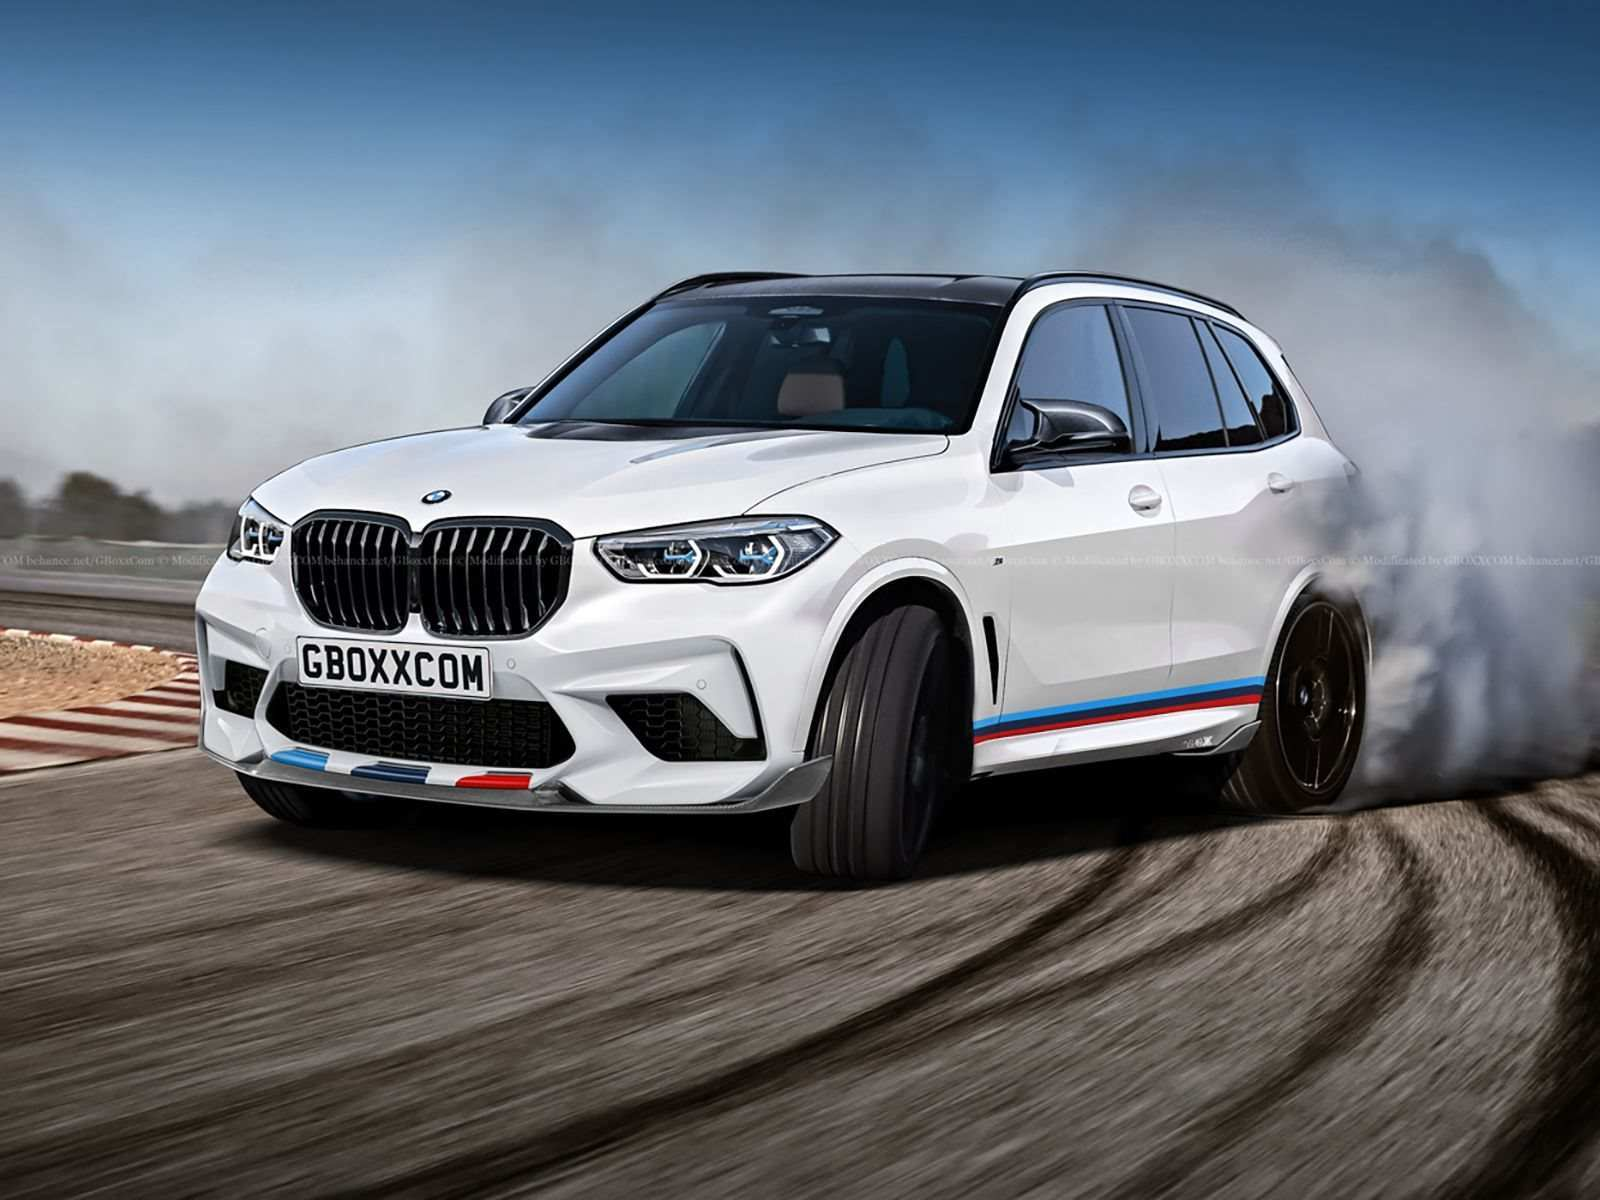 45 All New 2020 Bmw Suv Ratings by 2020 Bmw Suv